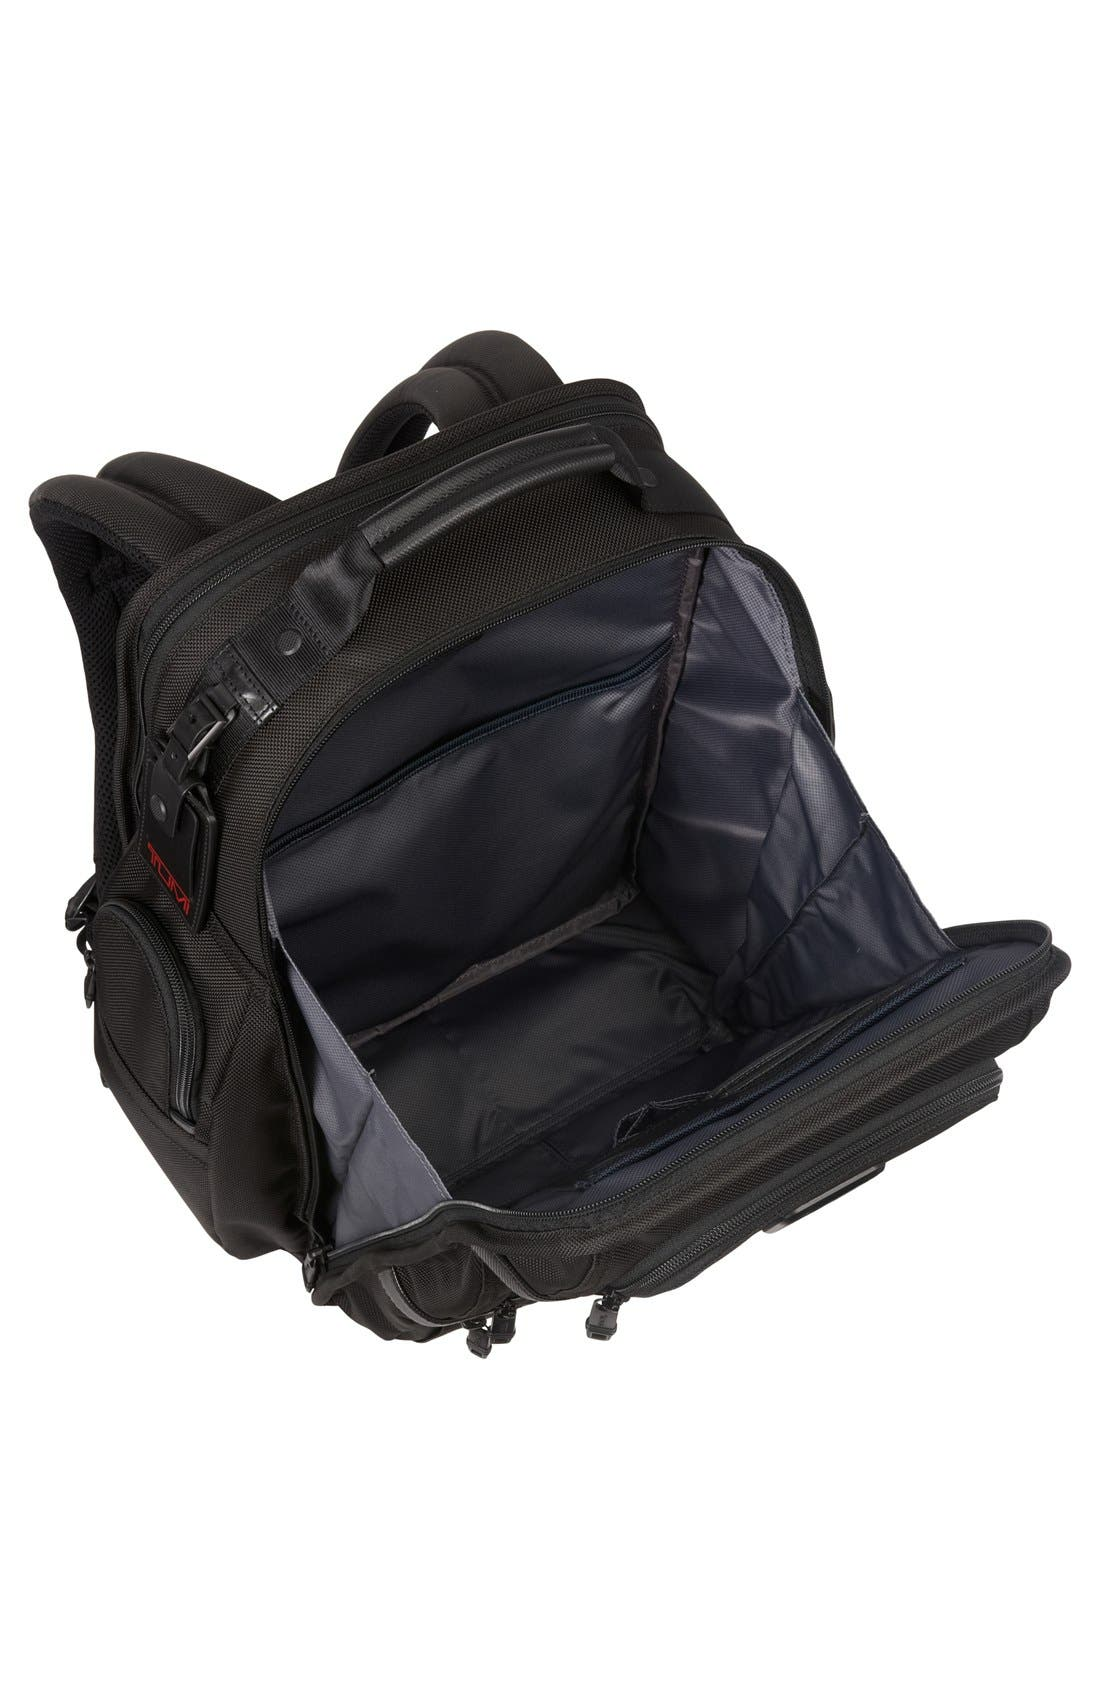 Alpha 2 T-Pass Laptop Brief Pack with Tumi ID Lock Pocket,                             Alternate thumbnail 3, color,                             Black